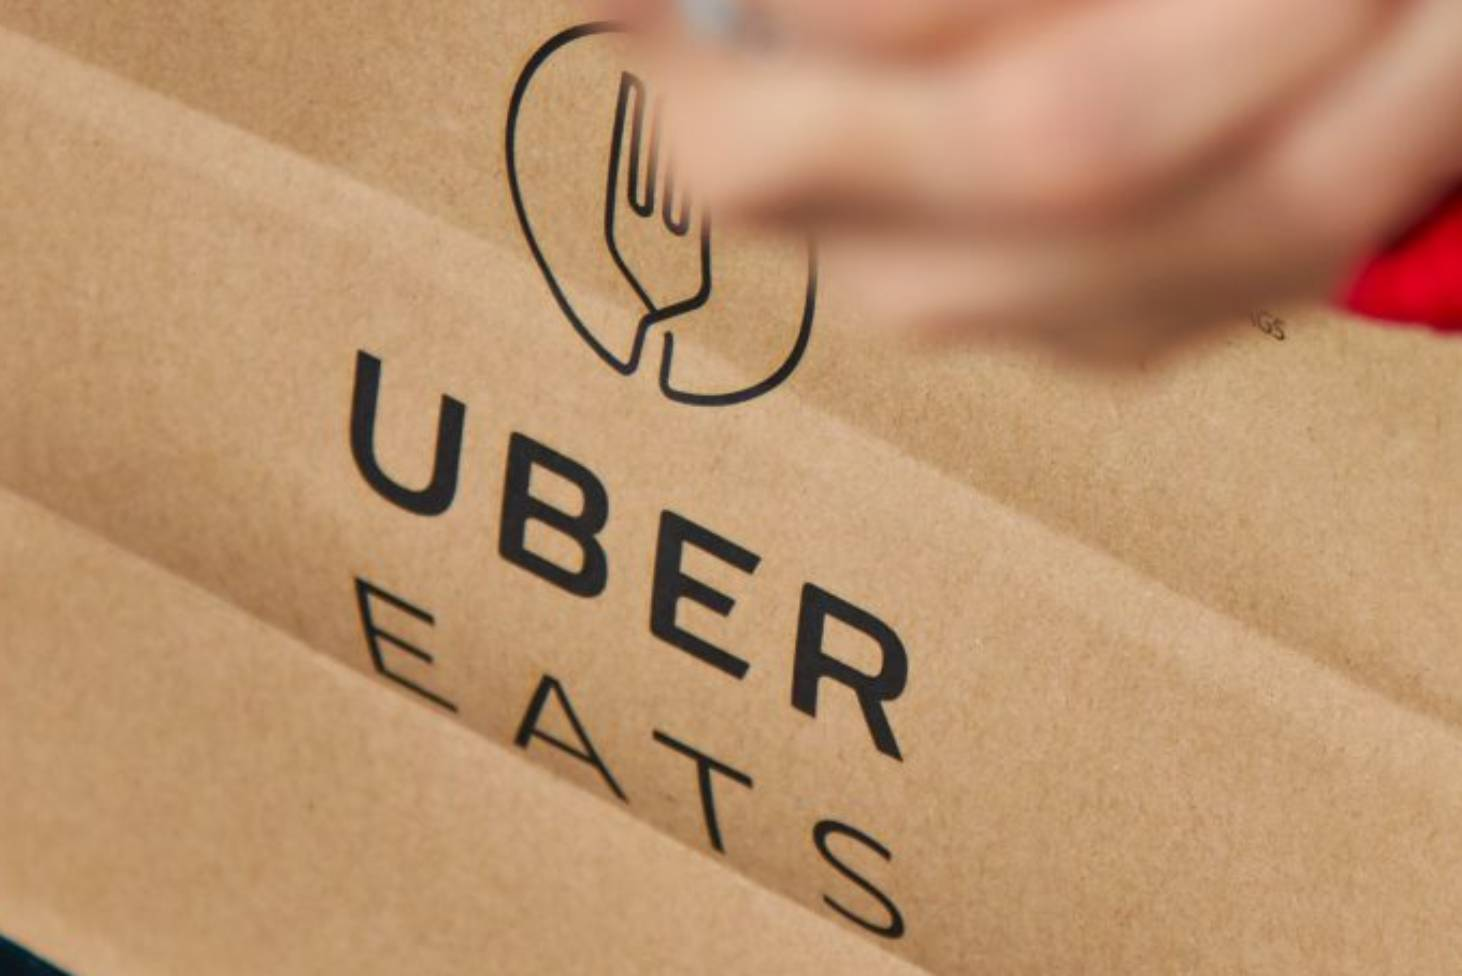 Frustrating' UberEats fee forces restaurants to downsize delivery